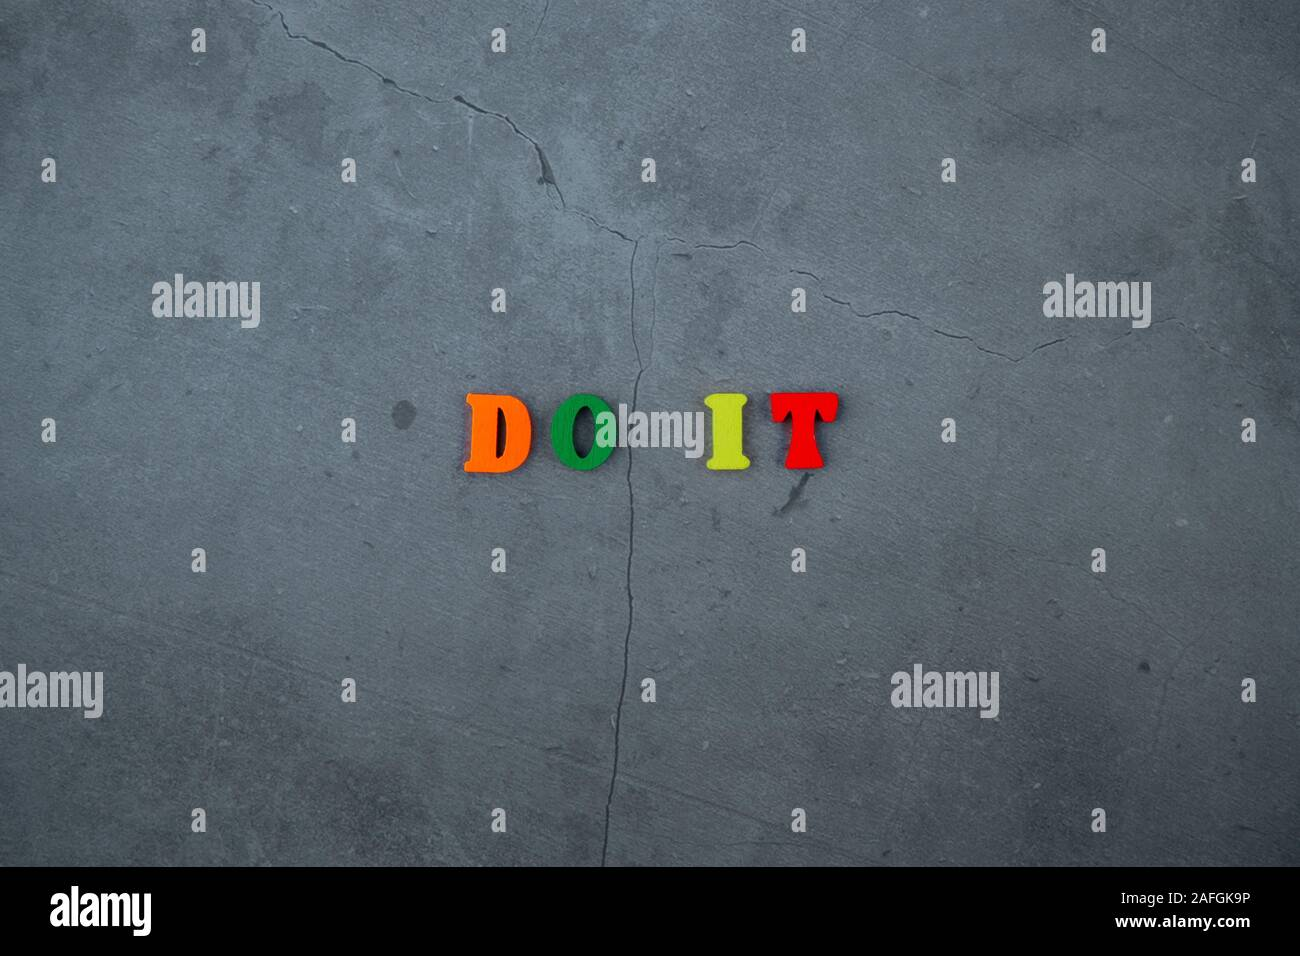 The multicolored do it word is made of wooden letters on a grey plastered wall background Stock Photo